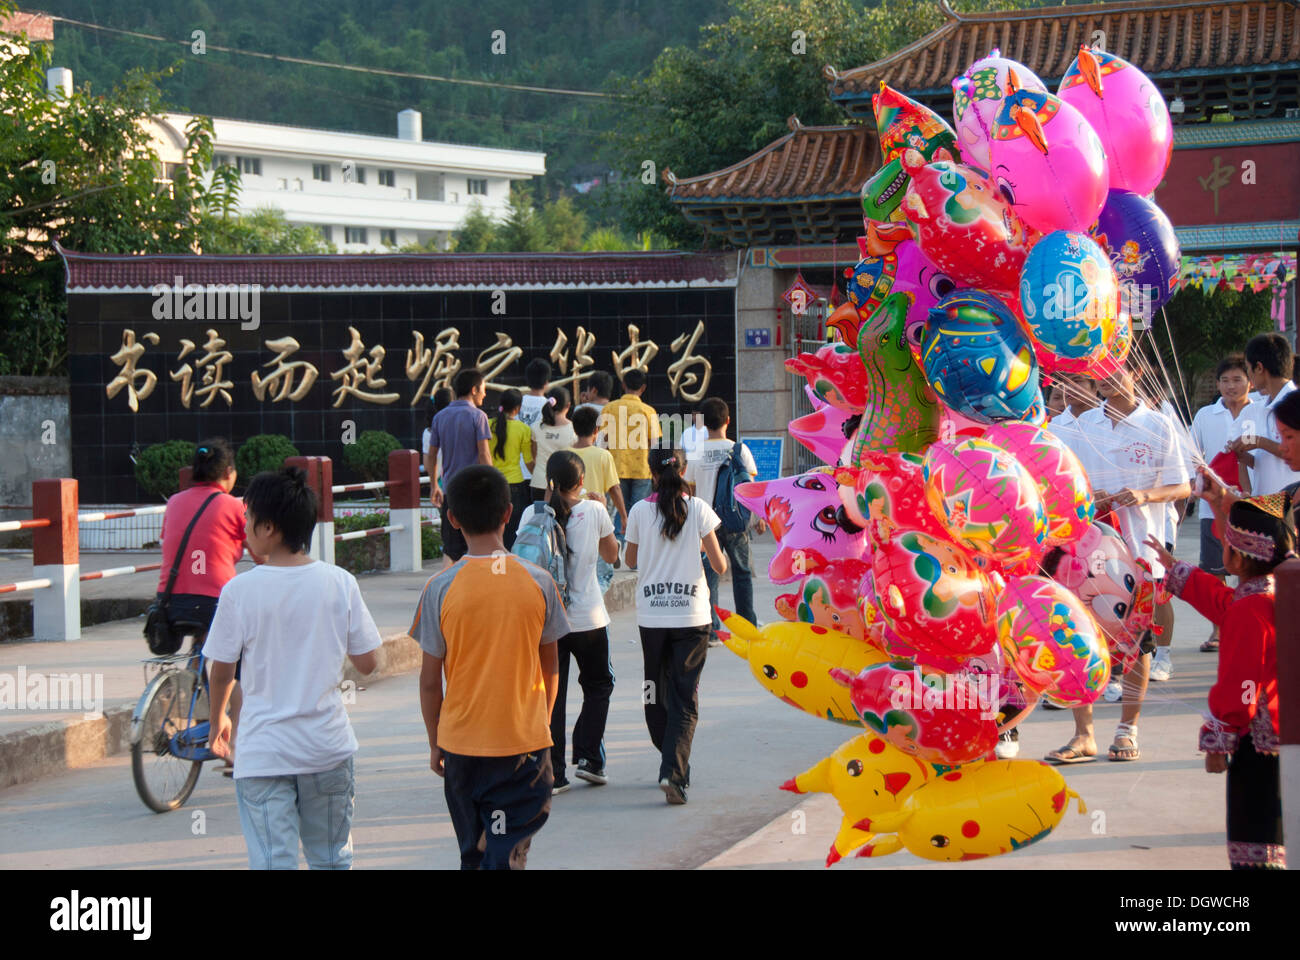 People walking along the street, kitsch, colourful balloons, Jiangcheng, Pu'er City, Yunnan Province, People's - Stock Image